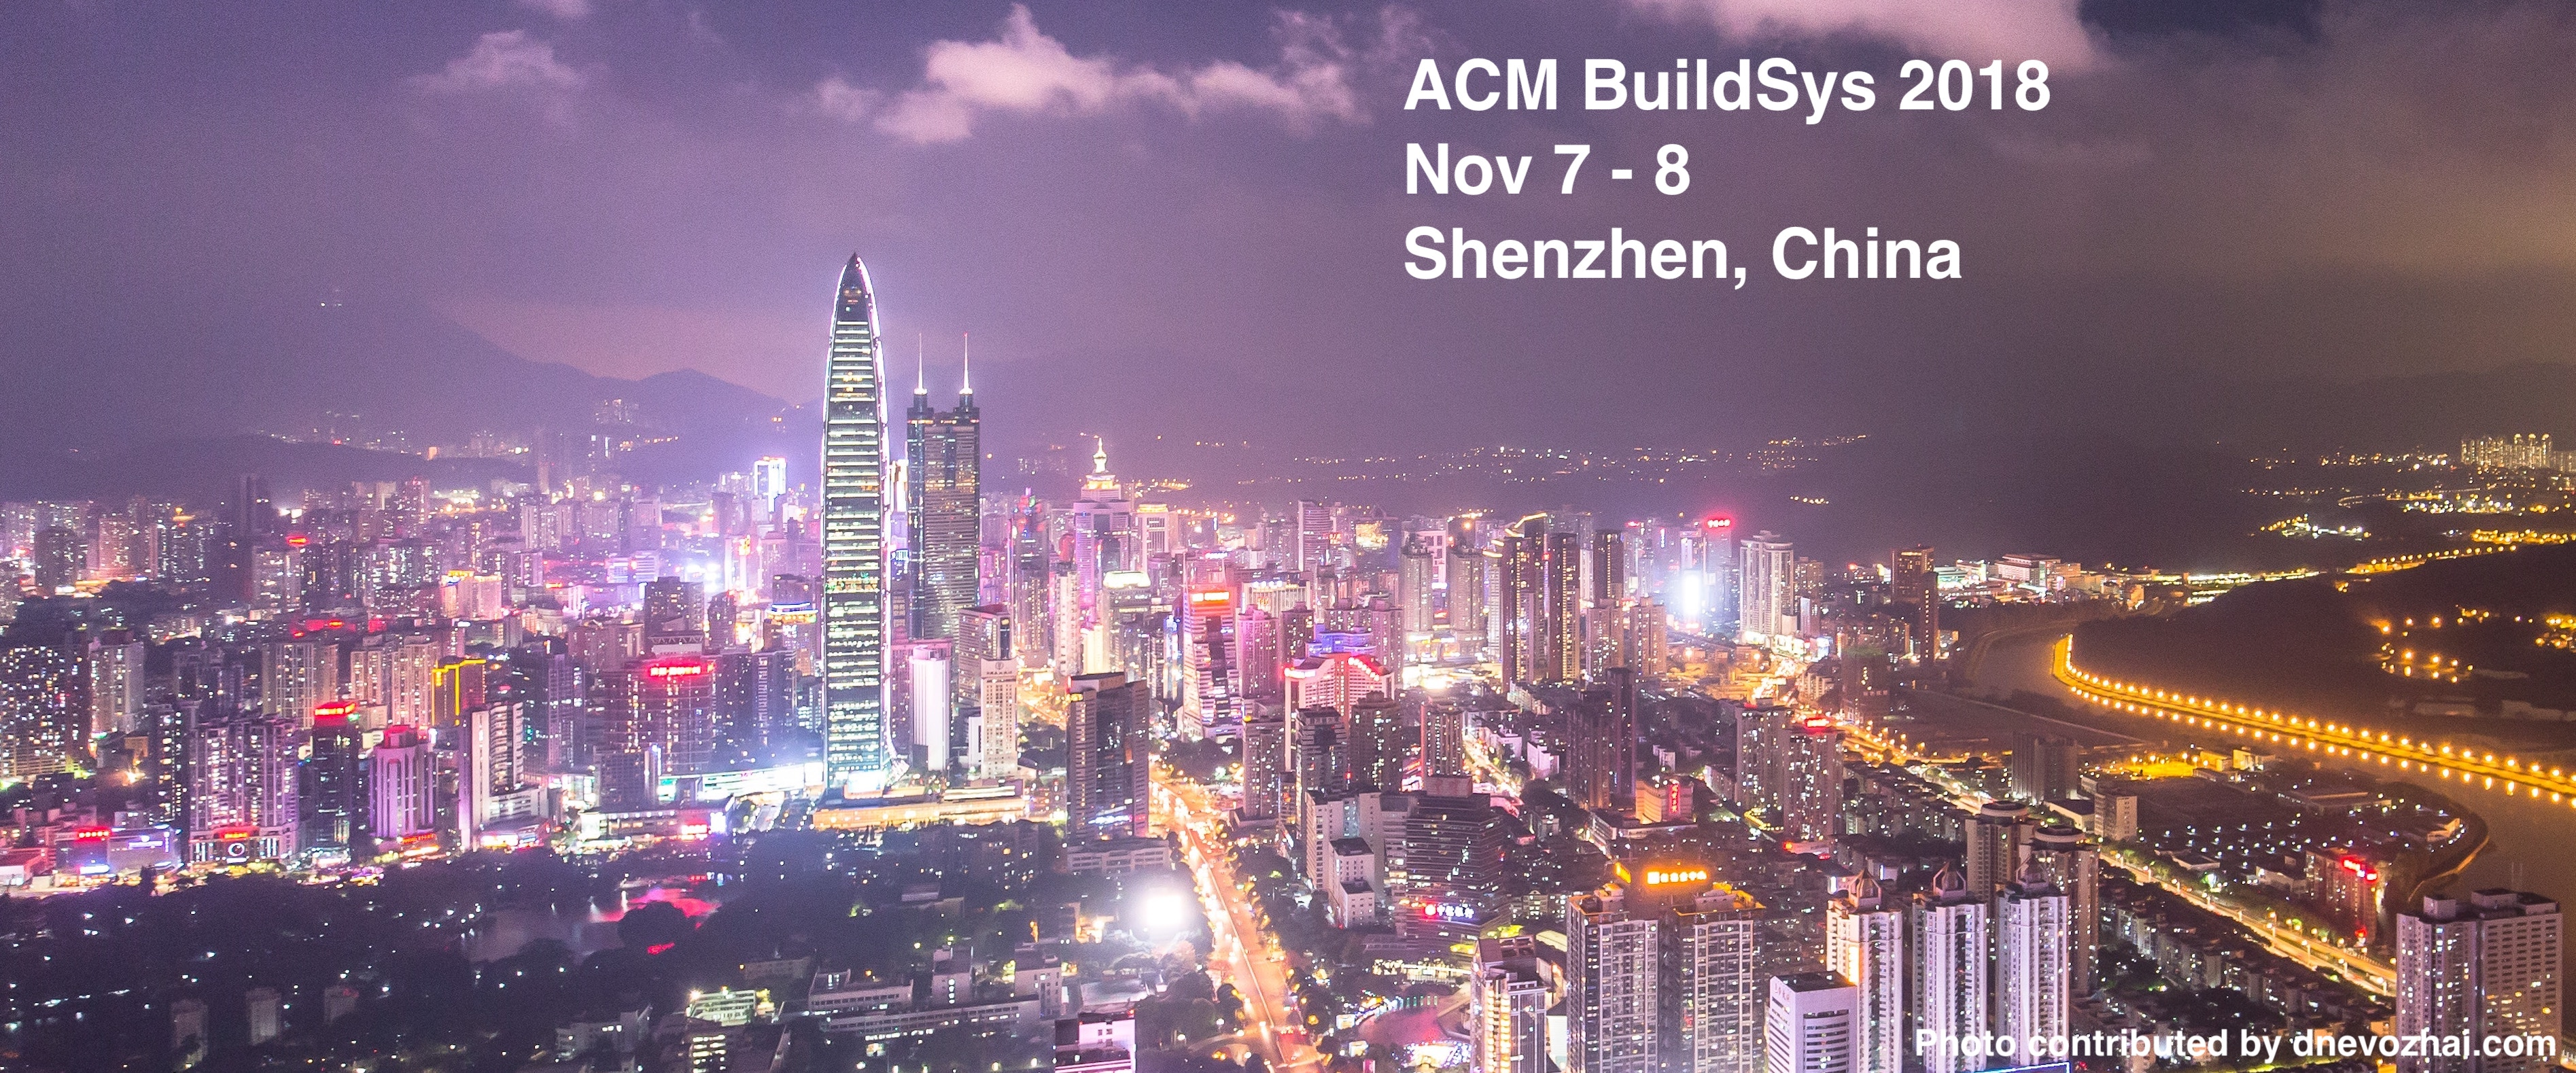 38bcbddde The 5th ACM International Conference on Systems for Energy-Efficient Built  Environments (BuildSys 2018) will host a highly selective, single-track  forum for ...